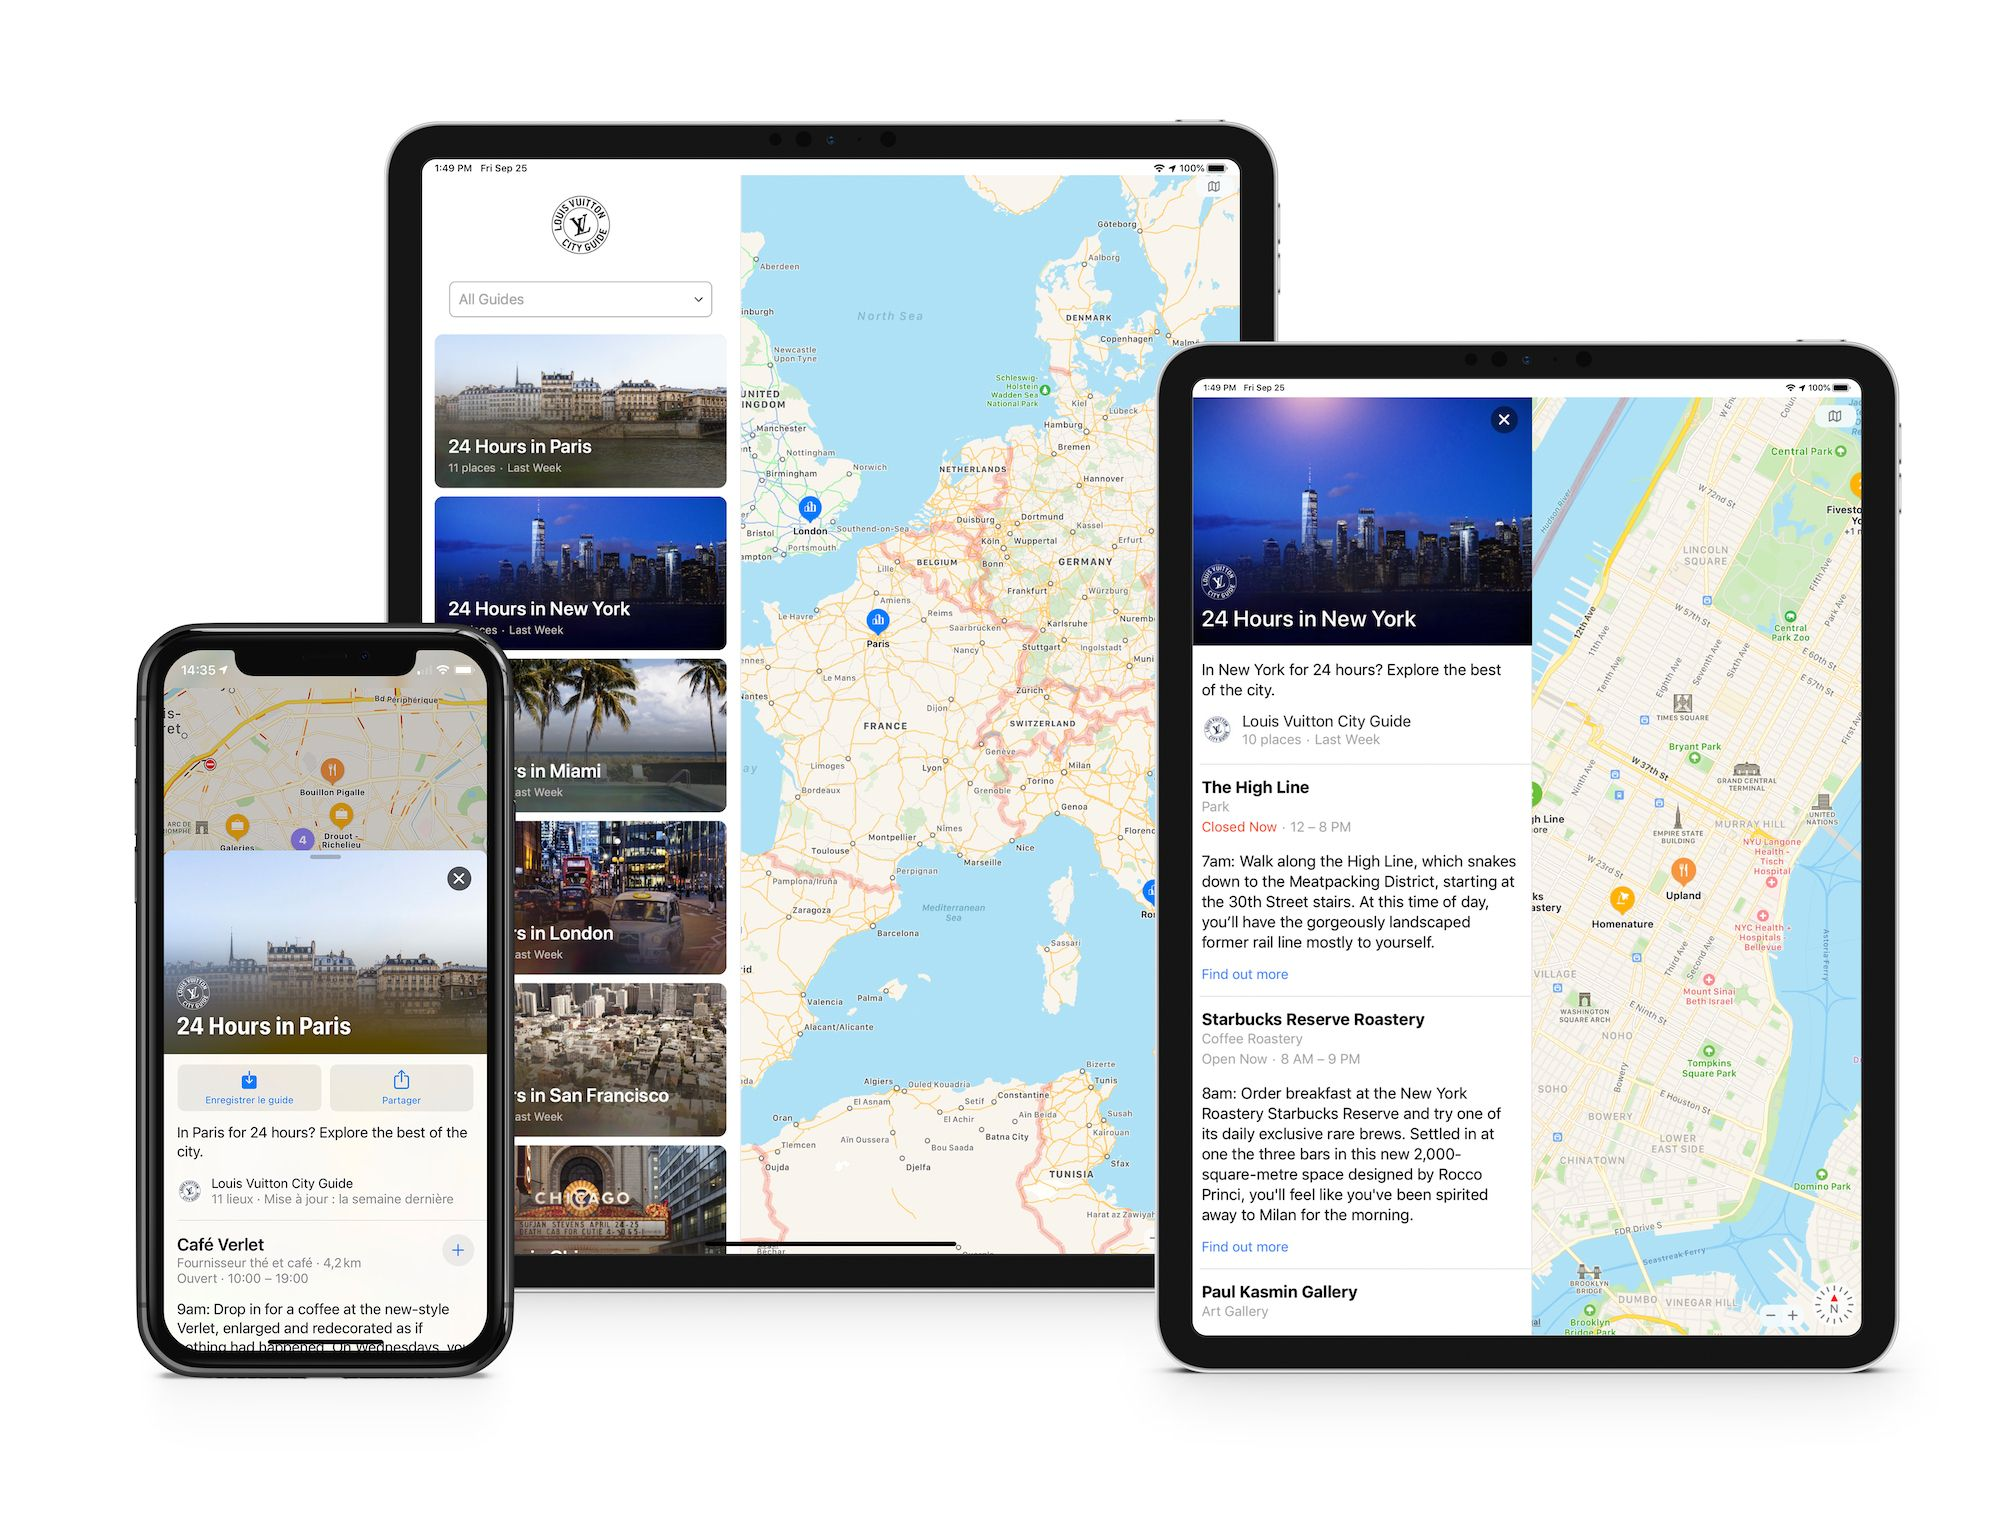 Louis Vuitton City Guide Now On Apple Maps